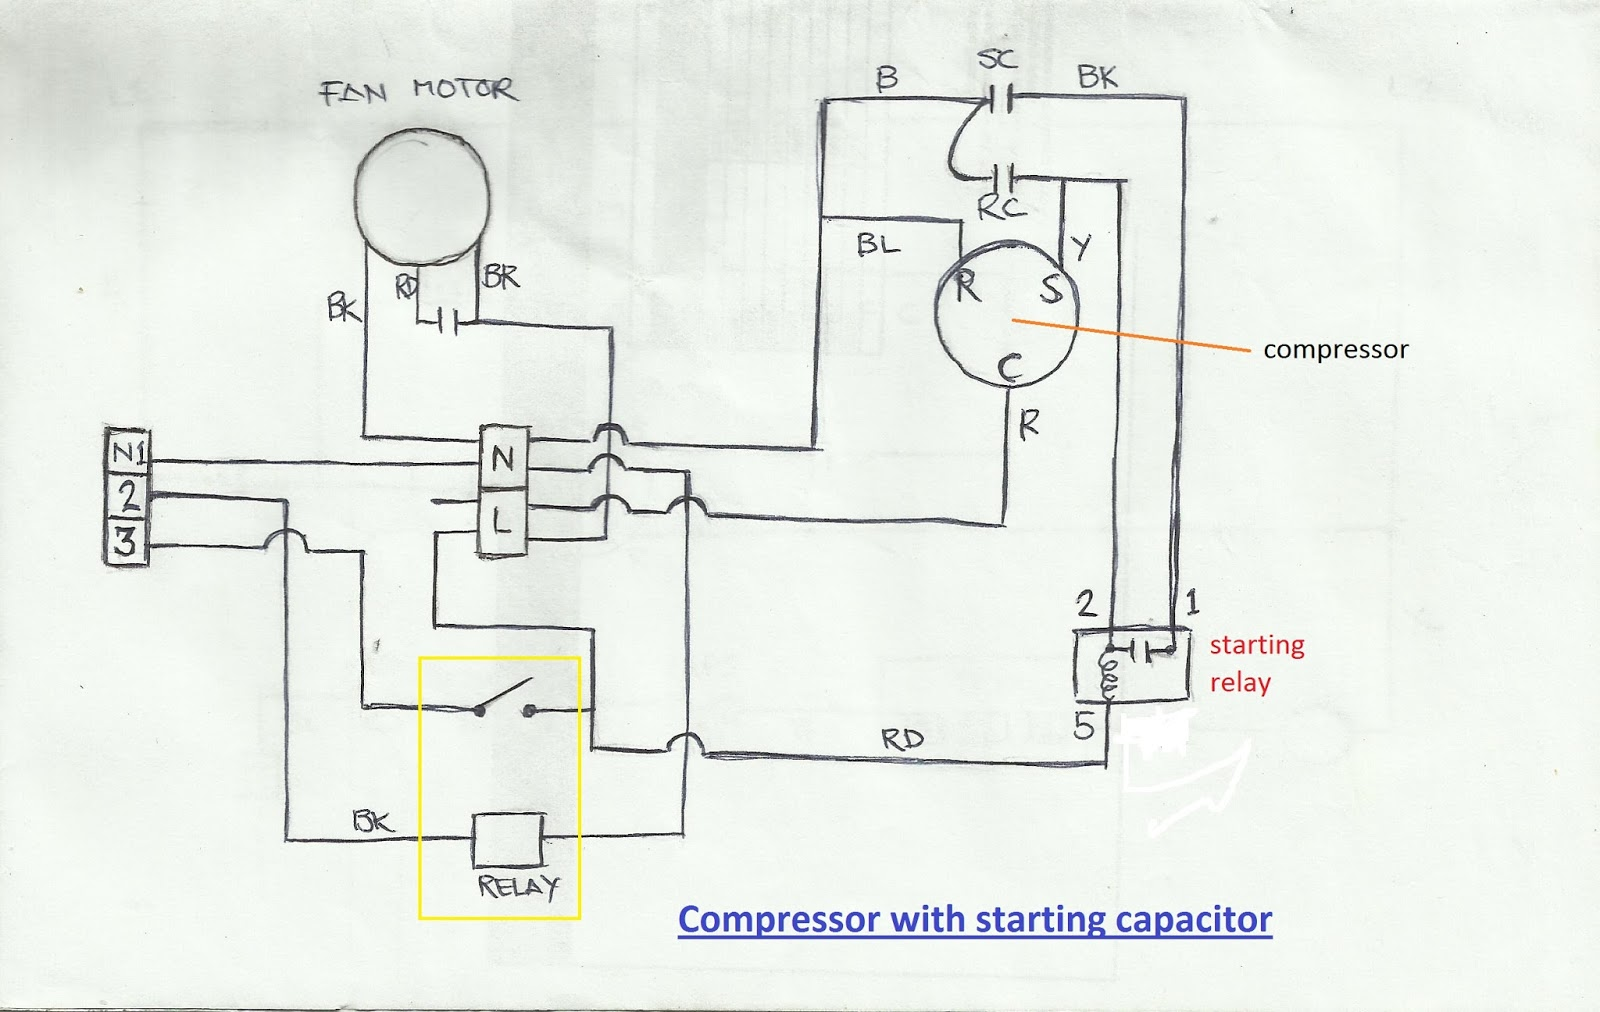 3 Phase Hvac Compressor Wiring Wire Condenser Fan Motor Diagrams Diagram Will Be A Thing U2022 Rh Exploreandmore Co Uk Three Ac Without Capacitor